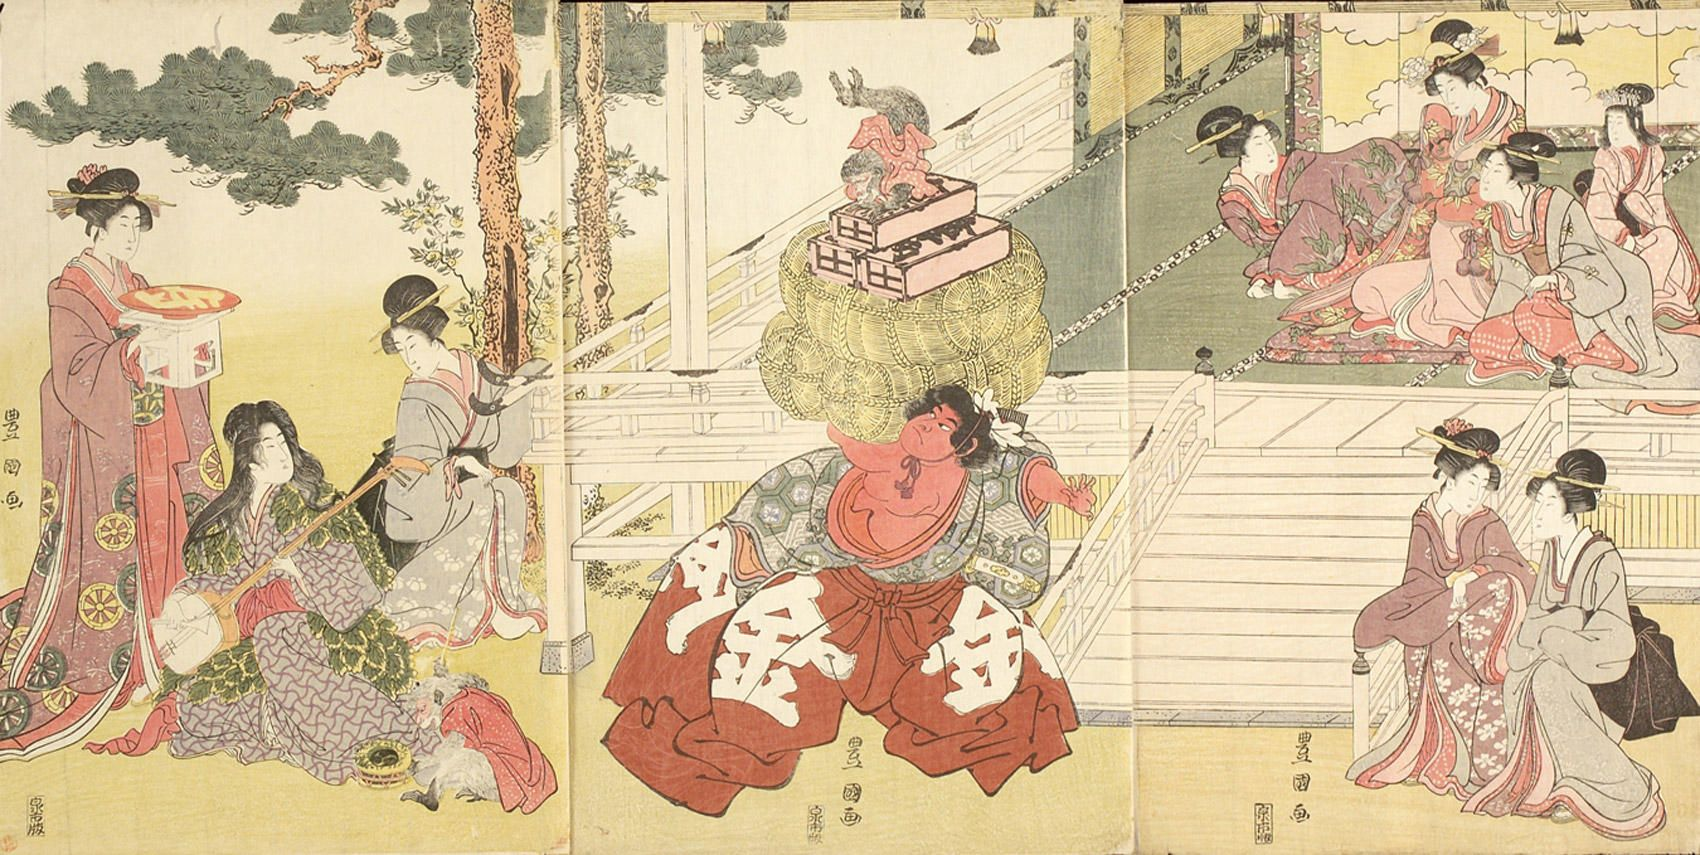 UTAGAWA TOYOKUNI Kintarô showing off his strength before a group of ladies watching the play